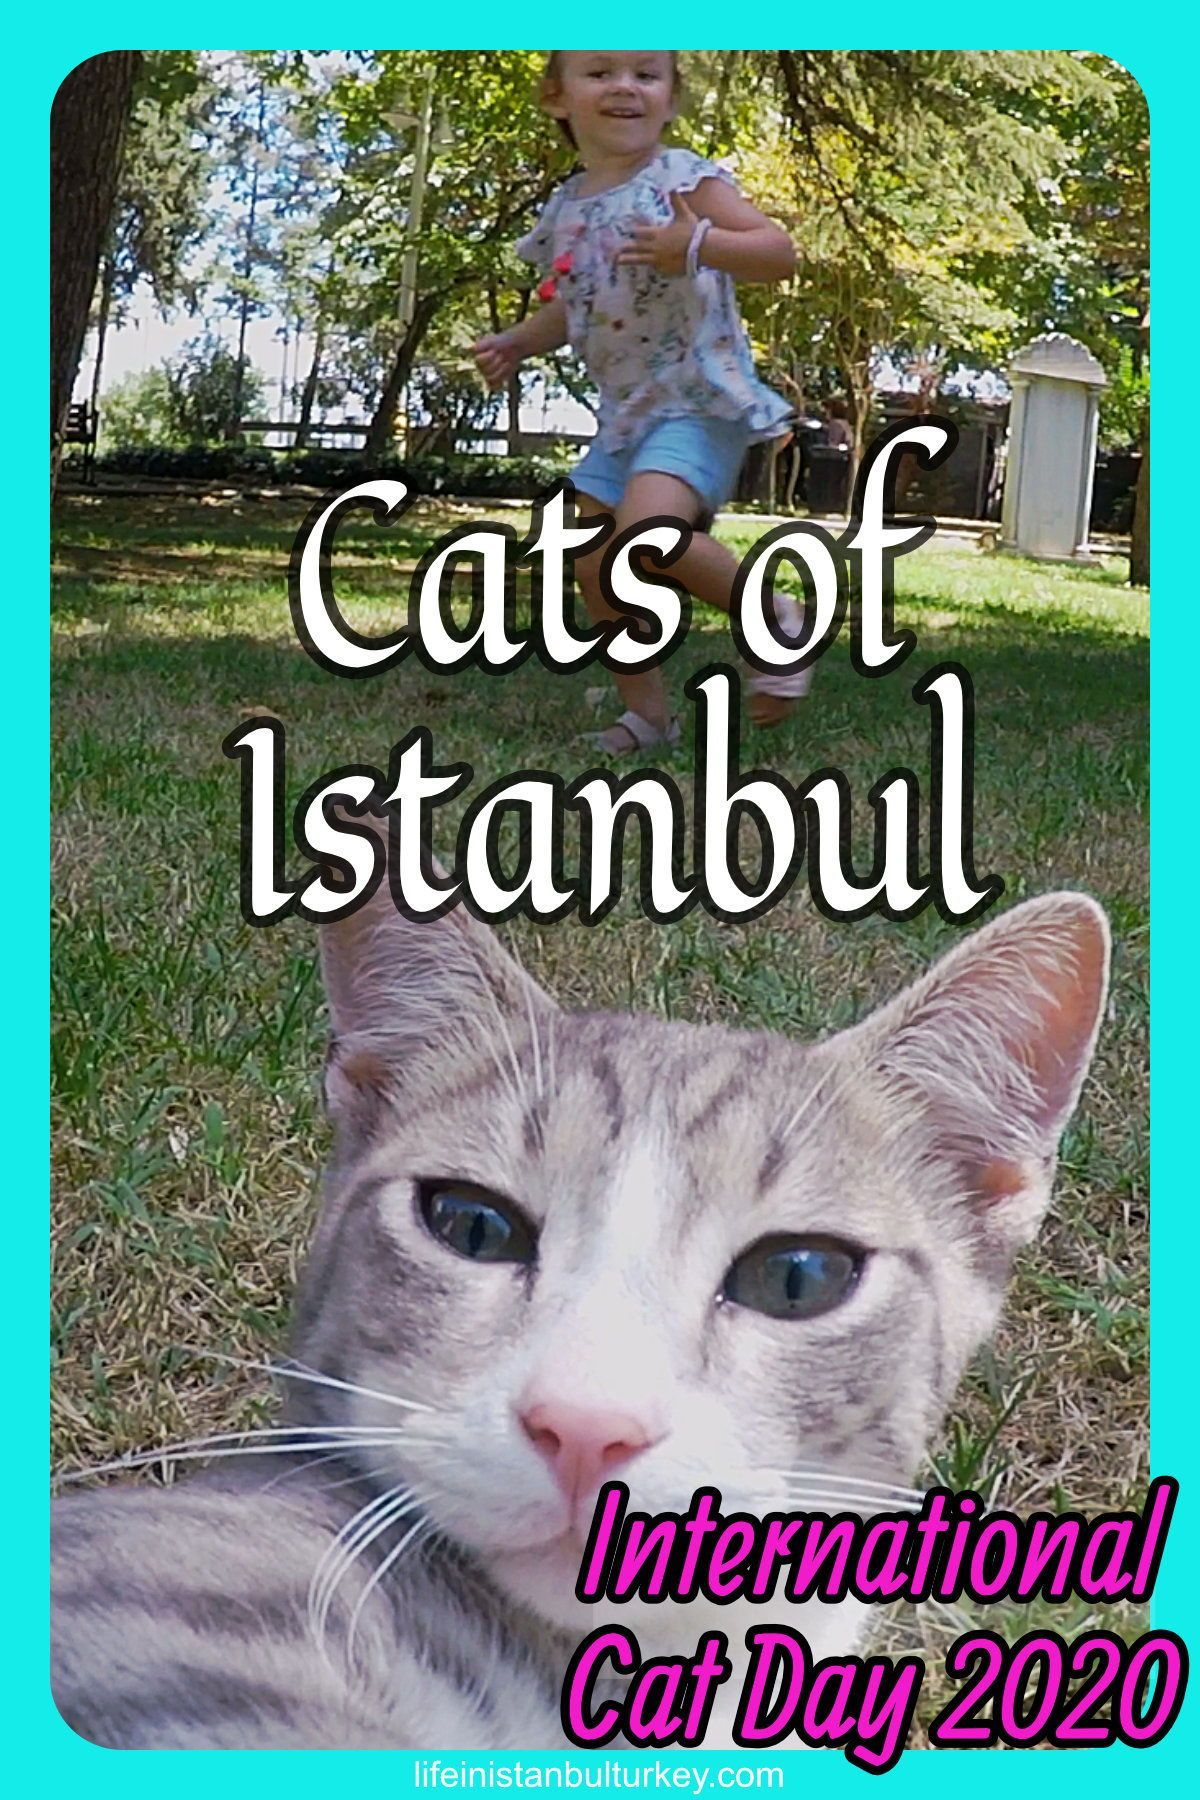 International Cat Day Istanbul 2020 In 2020 International Cat Day Cat Day Cats